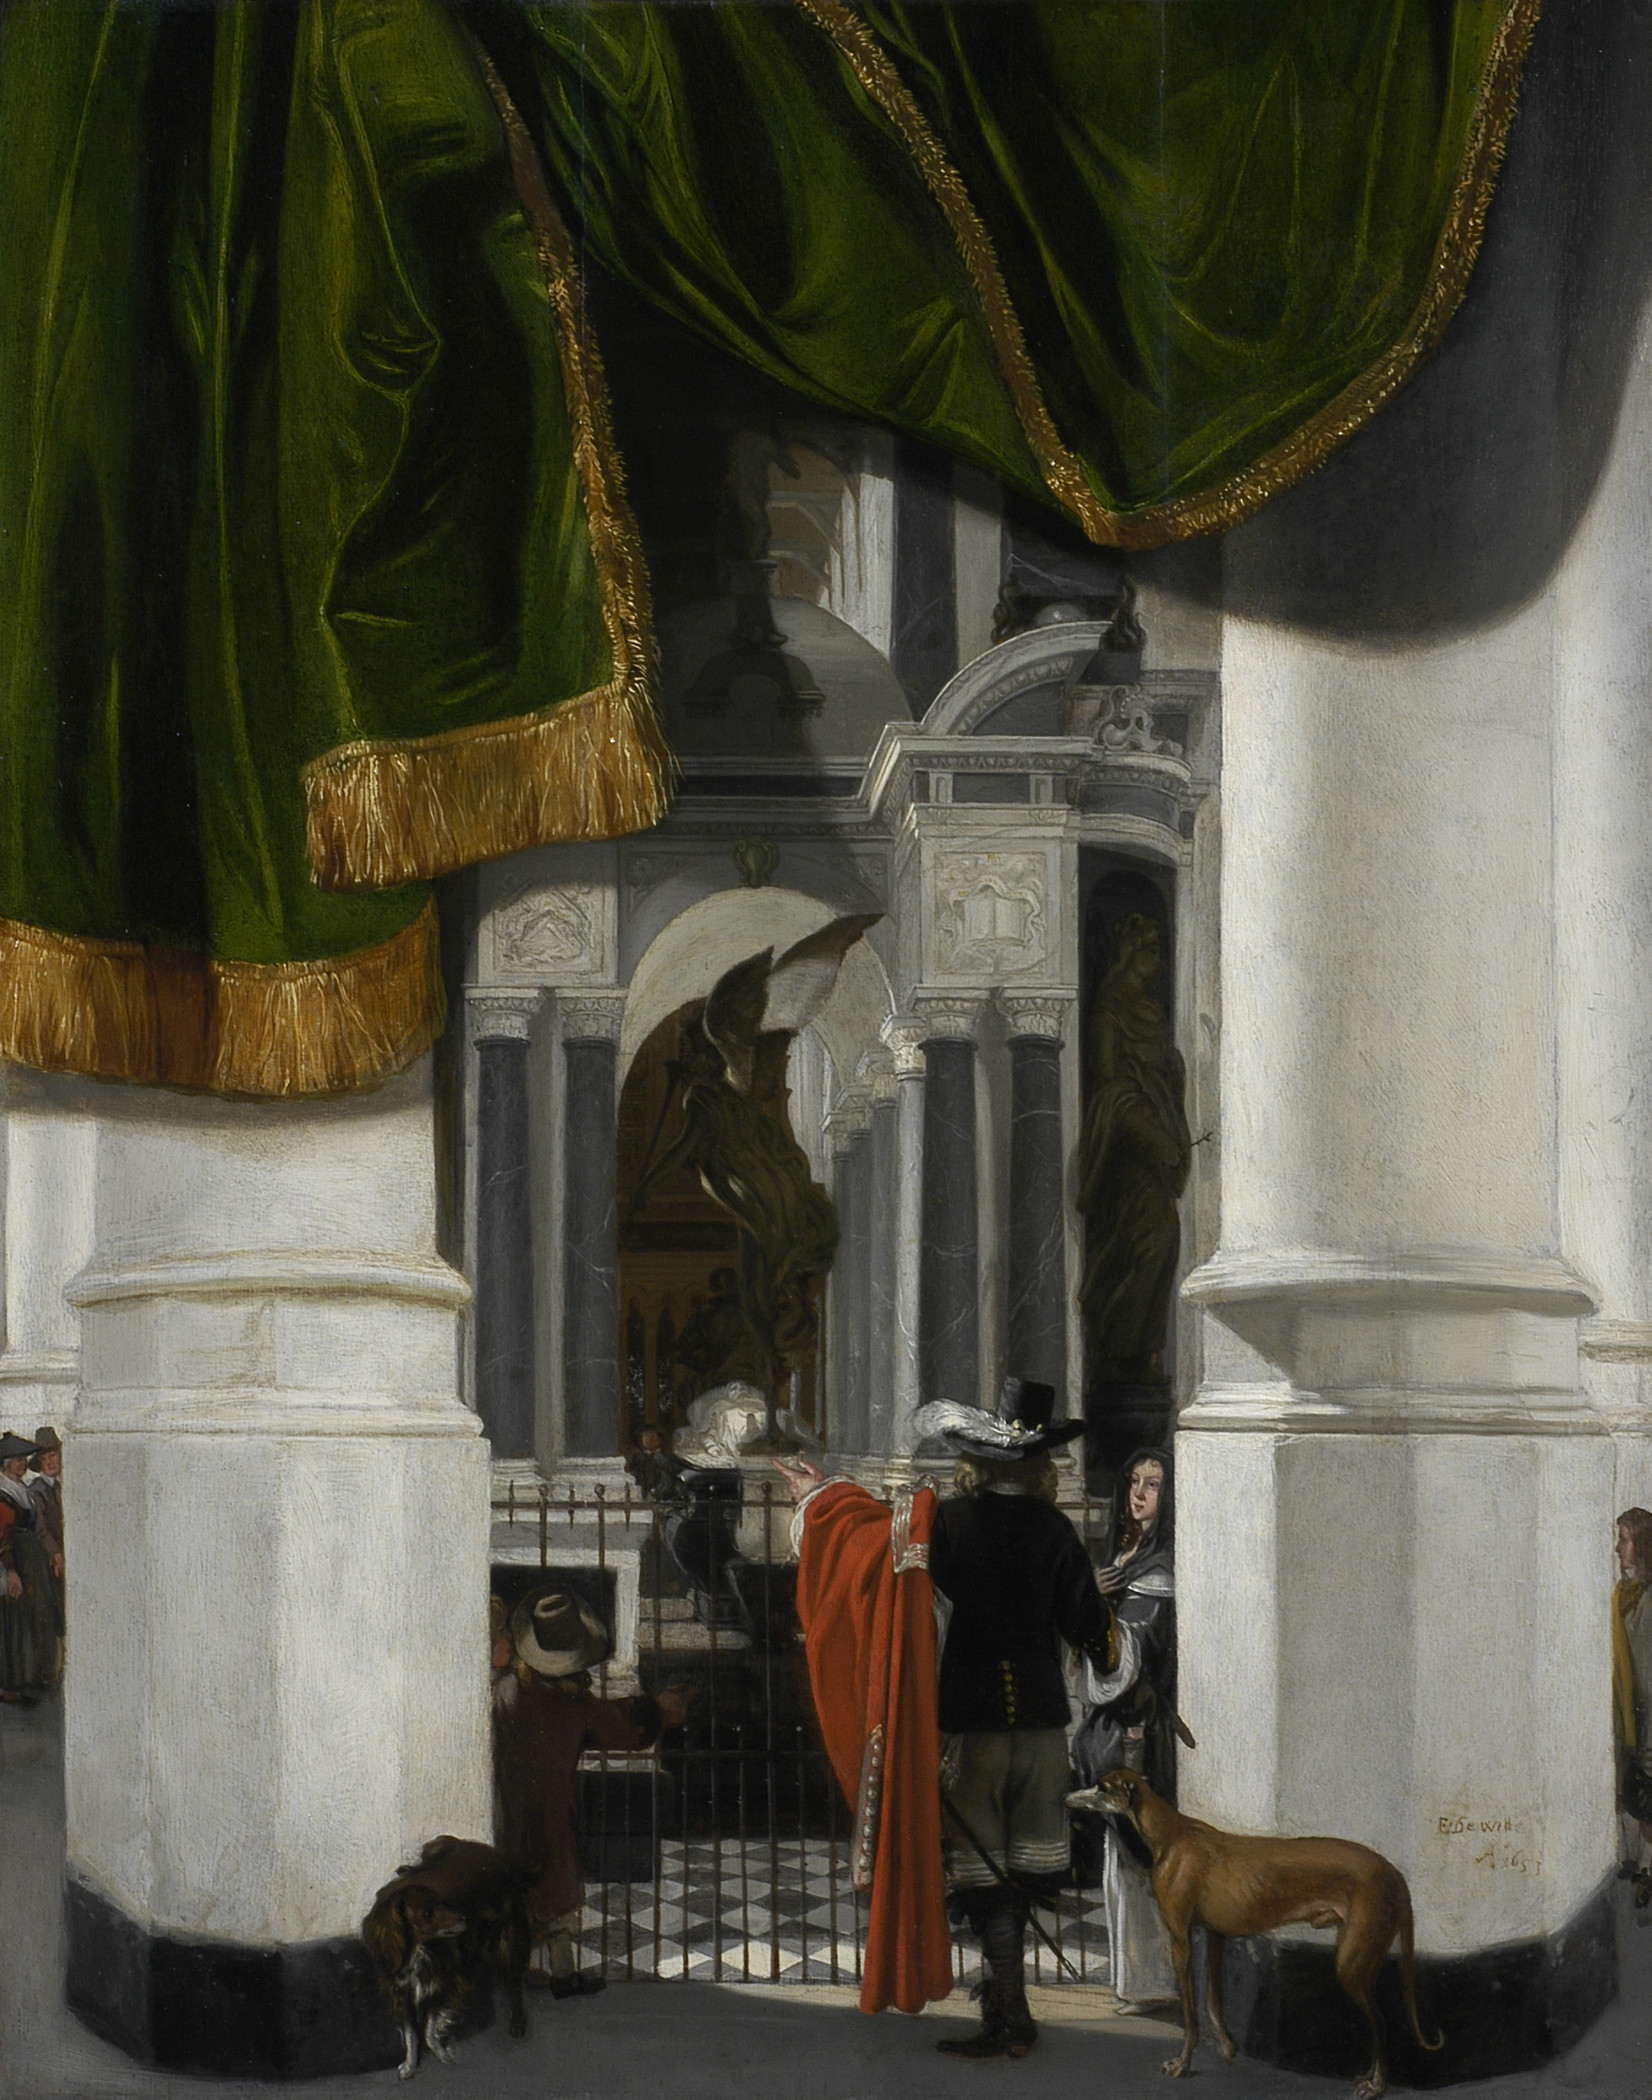 Emmanuel de Witte, Interior of the Nieuwe Kerk in Delft with the Tomb of William the Silent, 1653, Los Angeles County Museum of Art, Gift of Mr. and Mrs. Edward W. Carter [(M.2003.108.5)](http://collections.lacma.org/node/209228)